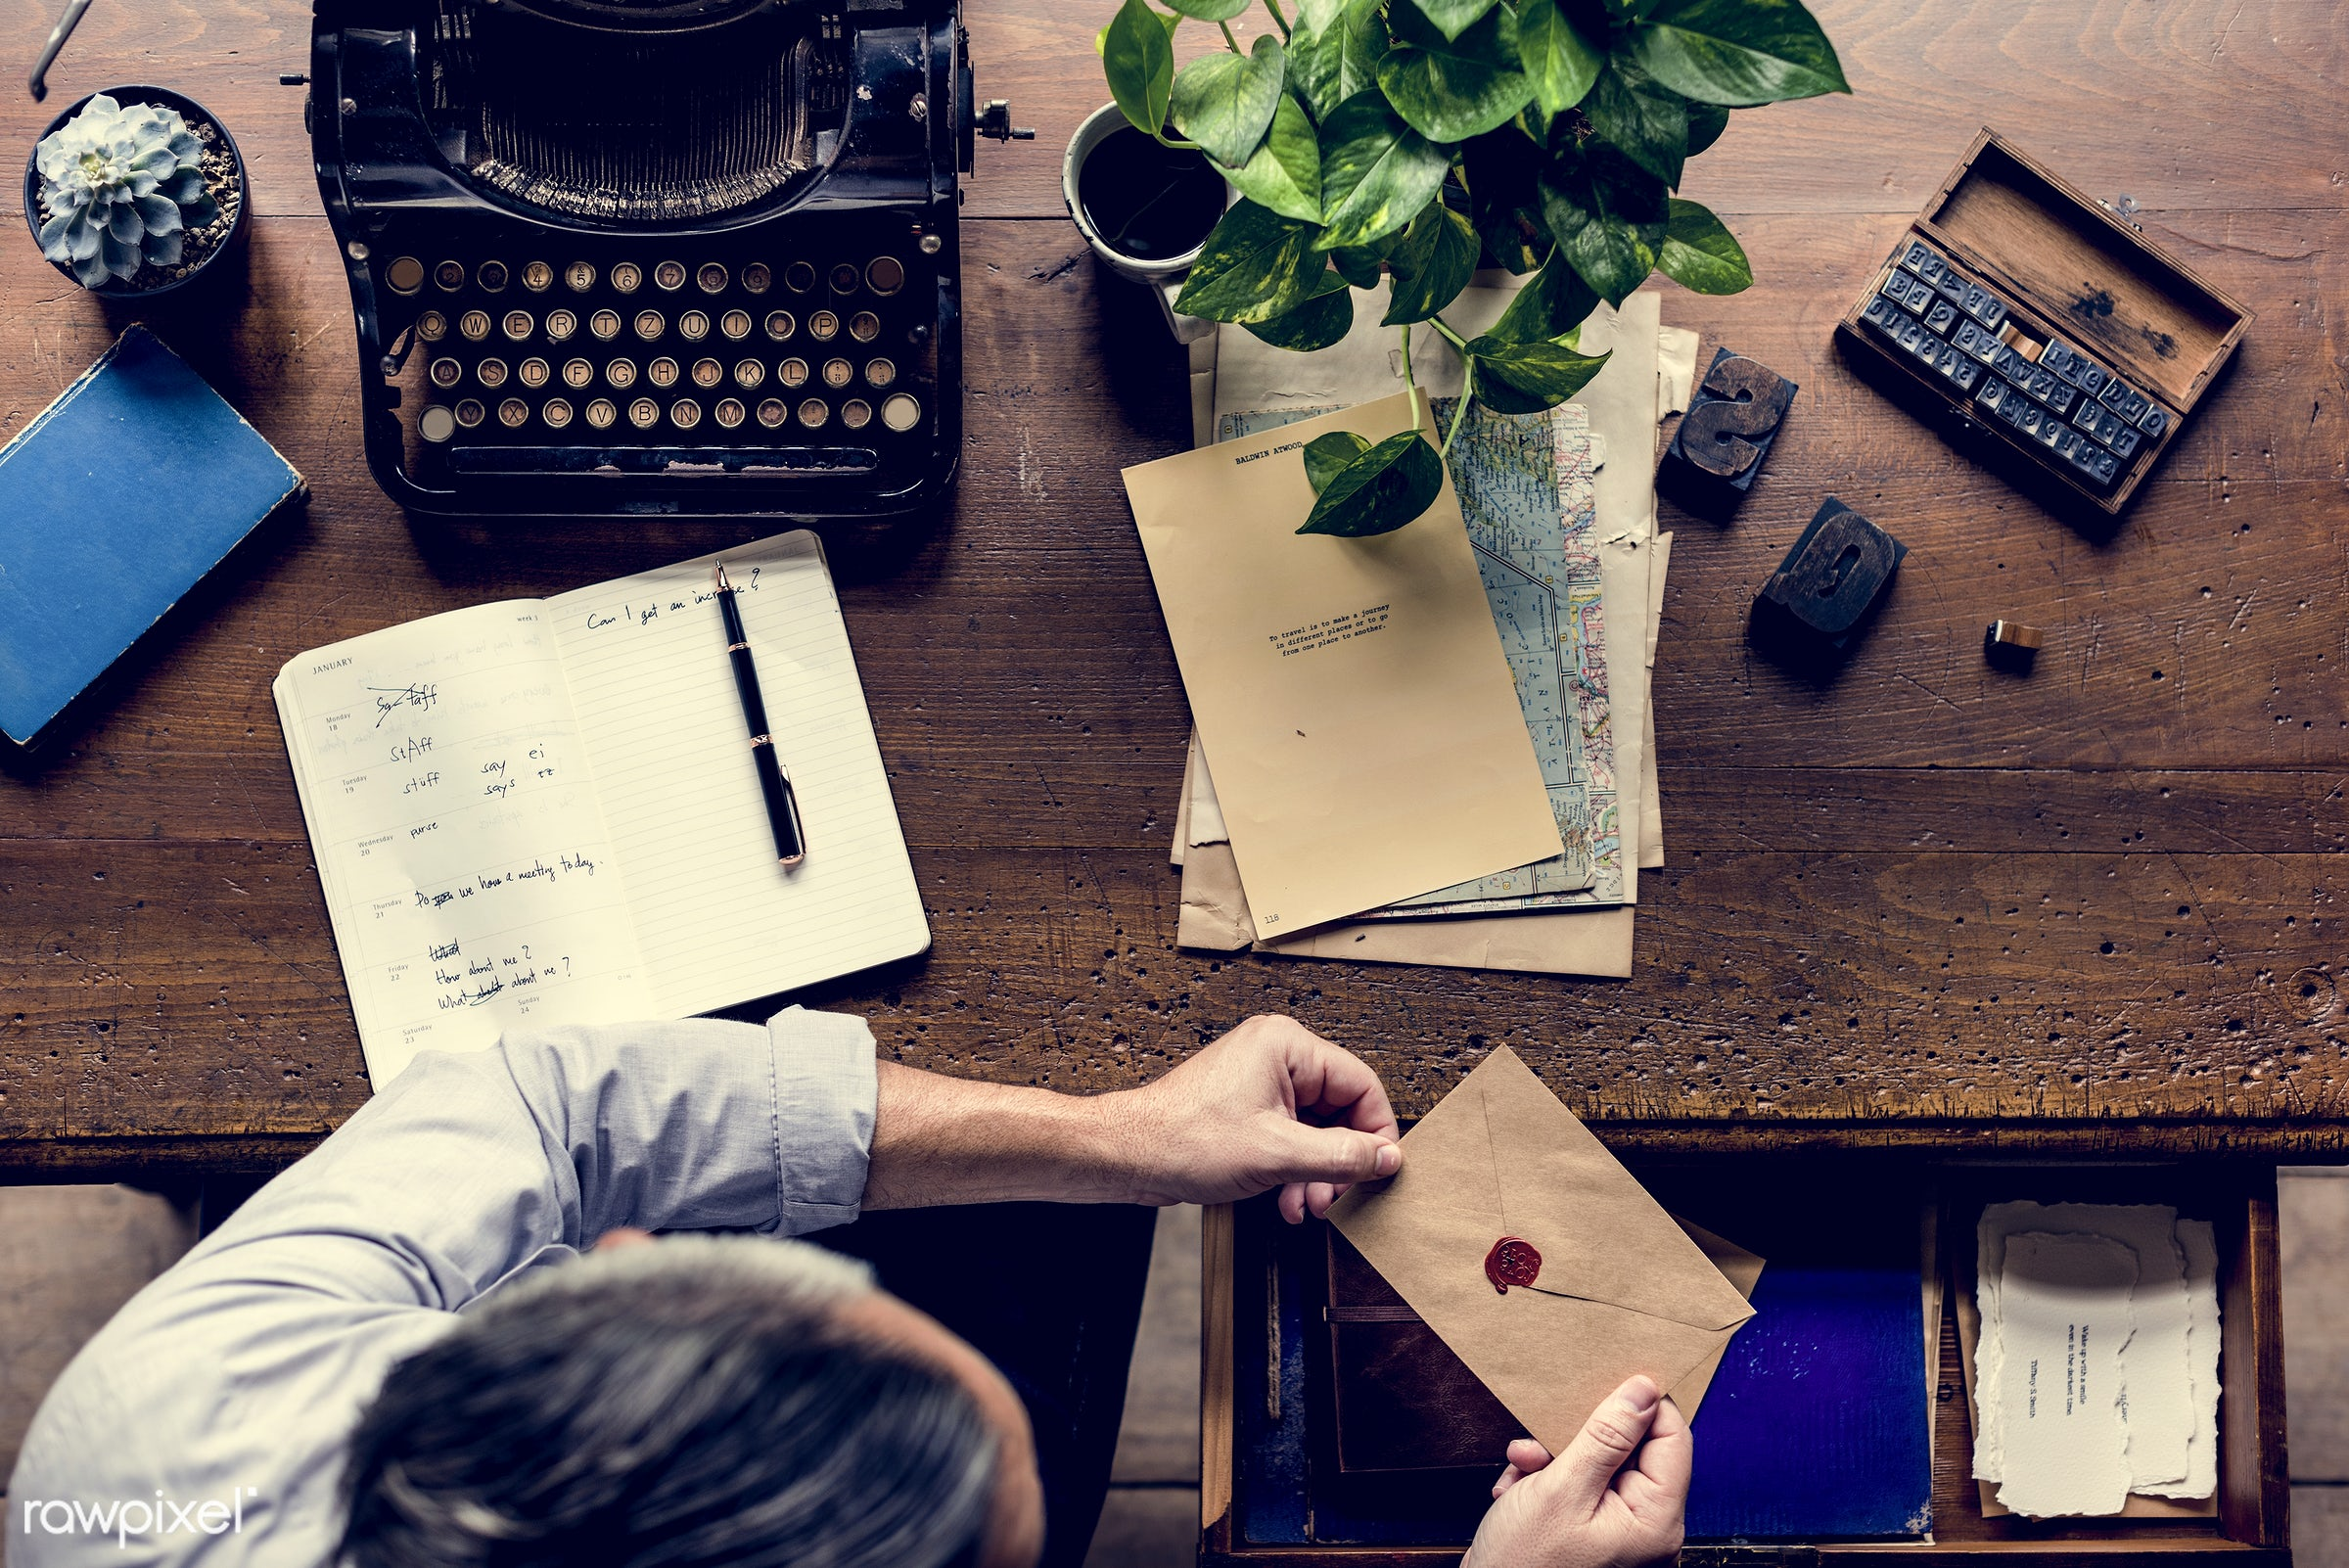 plant, workspace, paper, wax, retro, workplace, drinks, hands, seal, typewriter, men, working, aerial view, classic, man,...